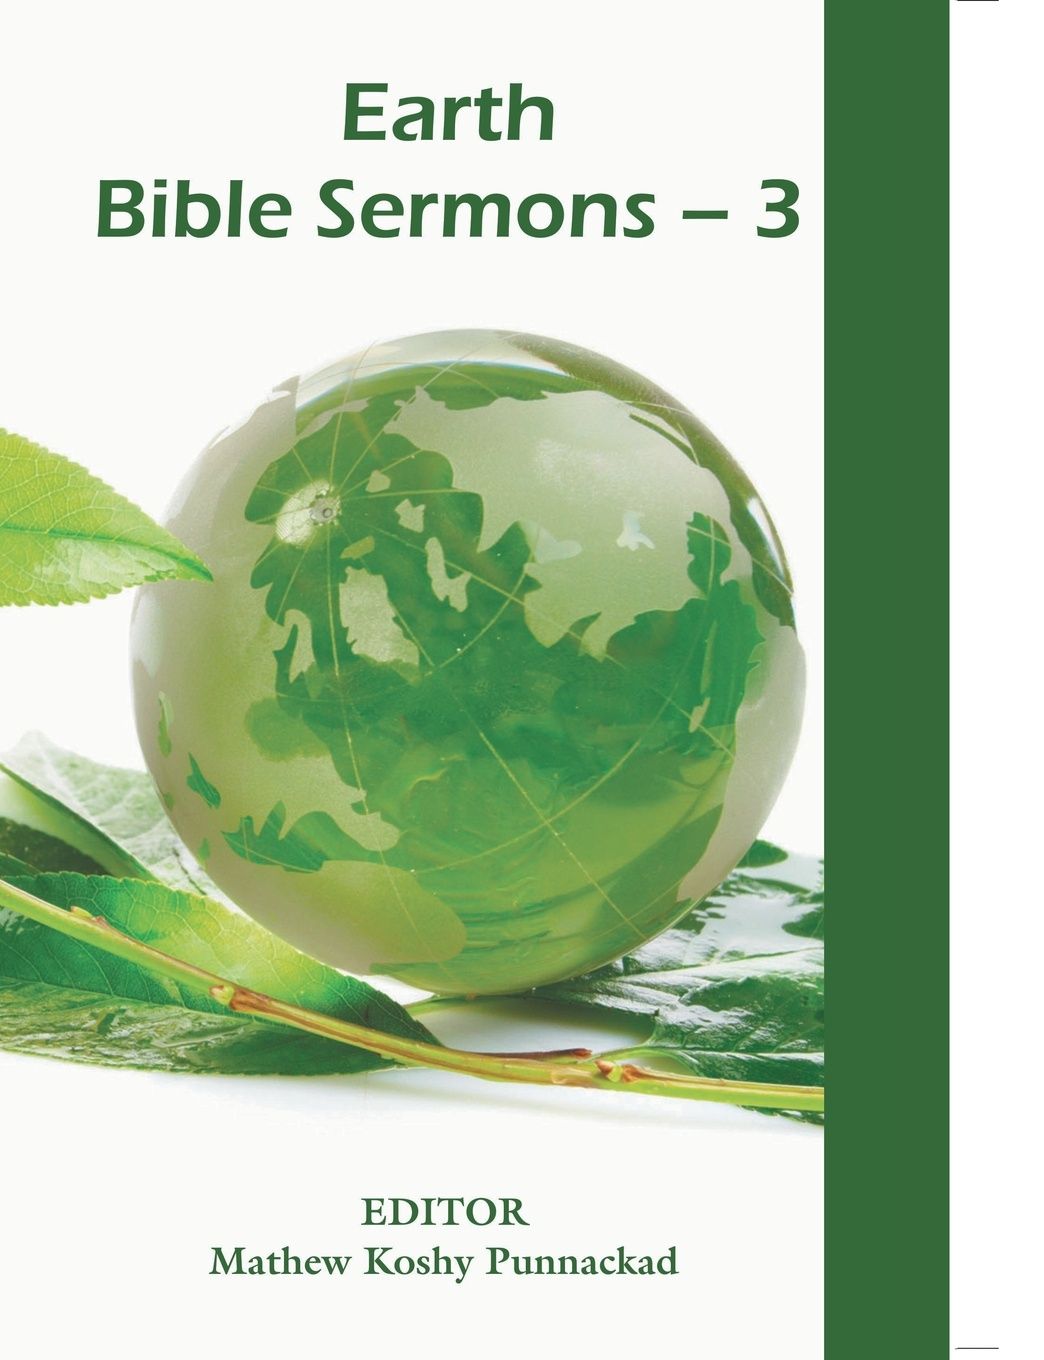 Punnackad Mathew Koshy Editor Earth Bible Sermons-3 being ecological